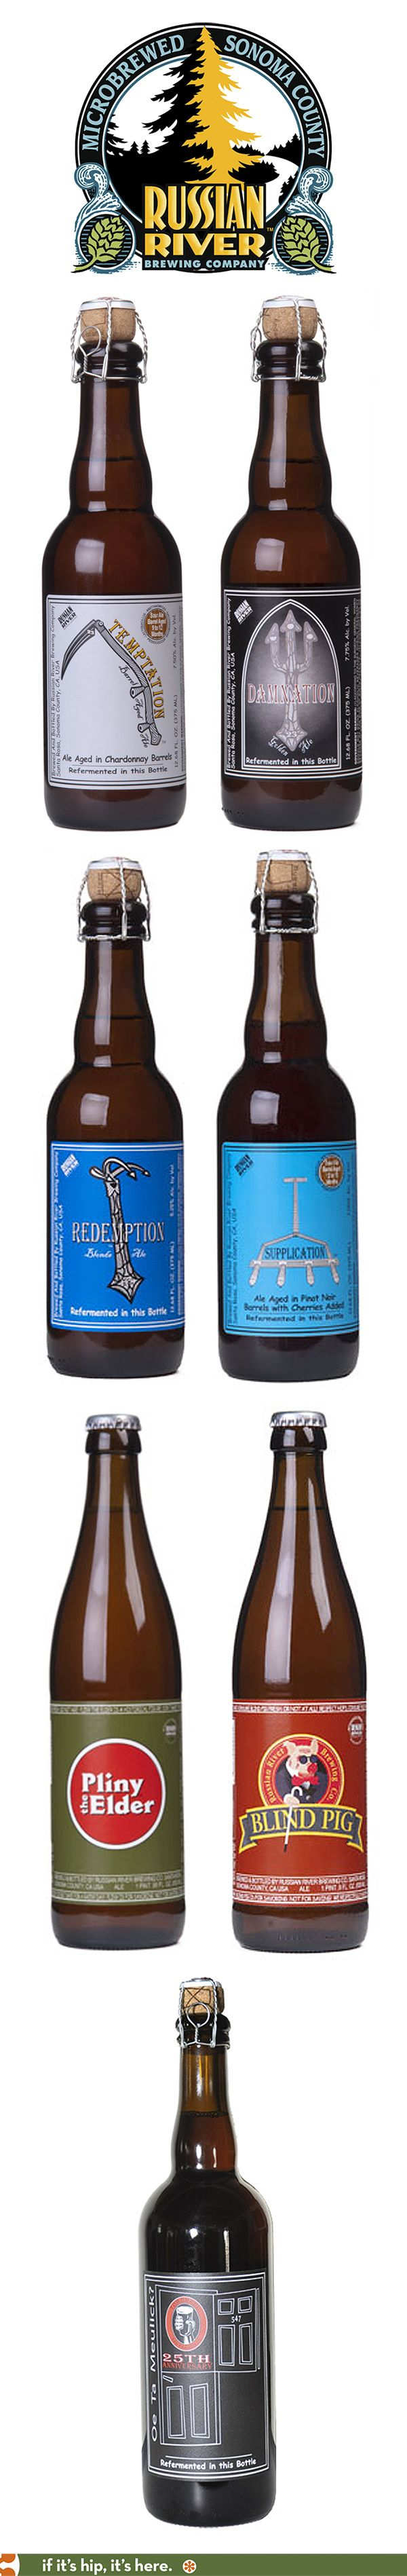 Russian River brewing Company's Bottled beers.